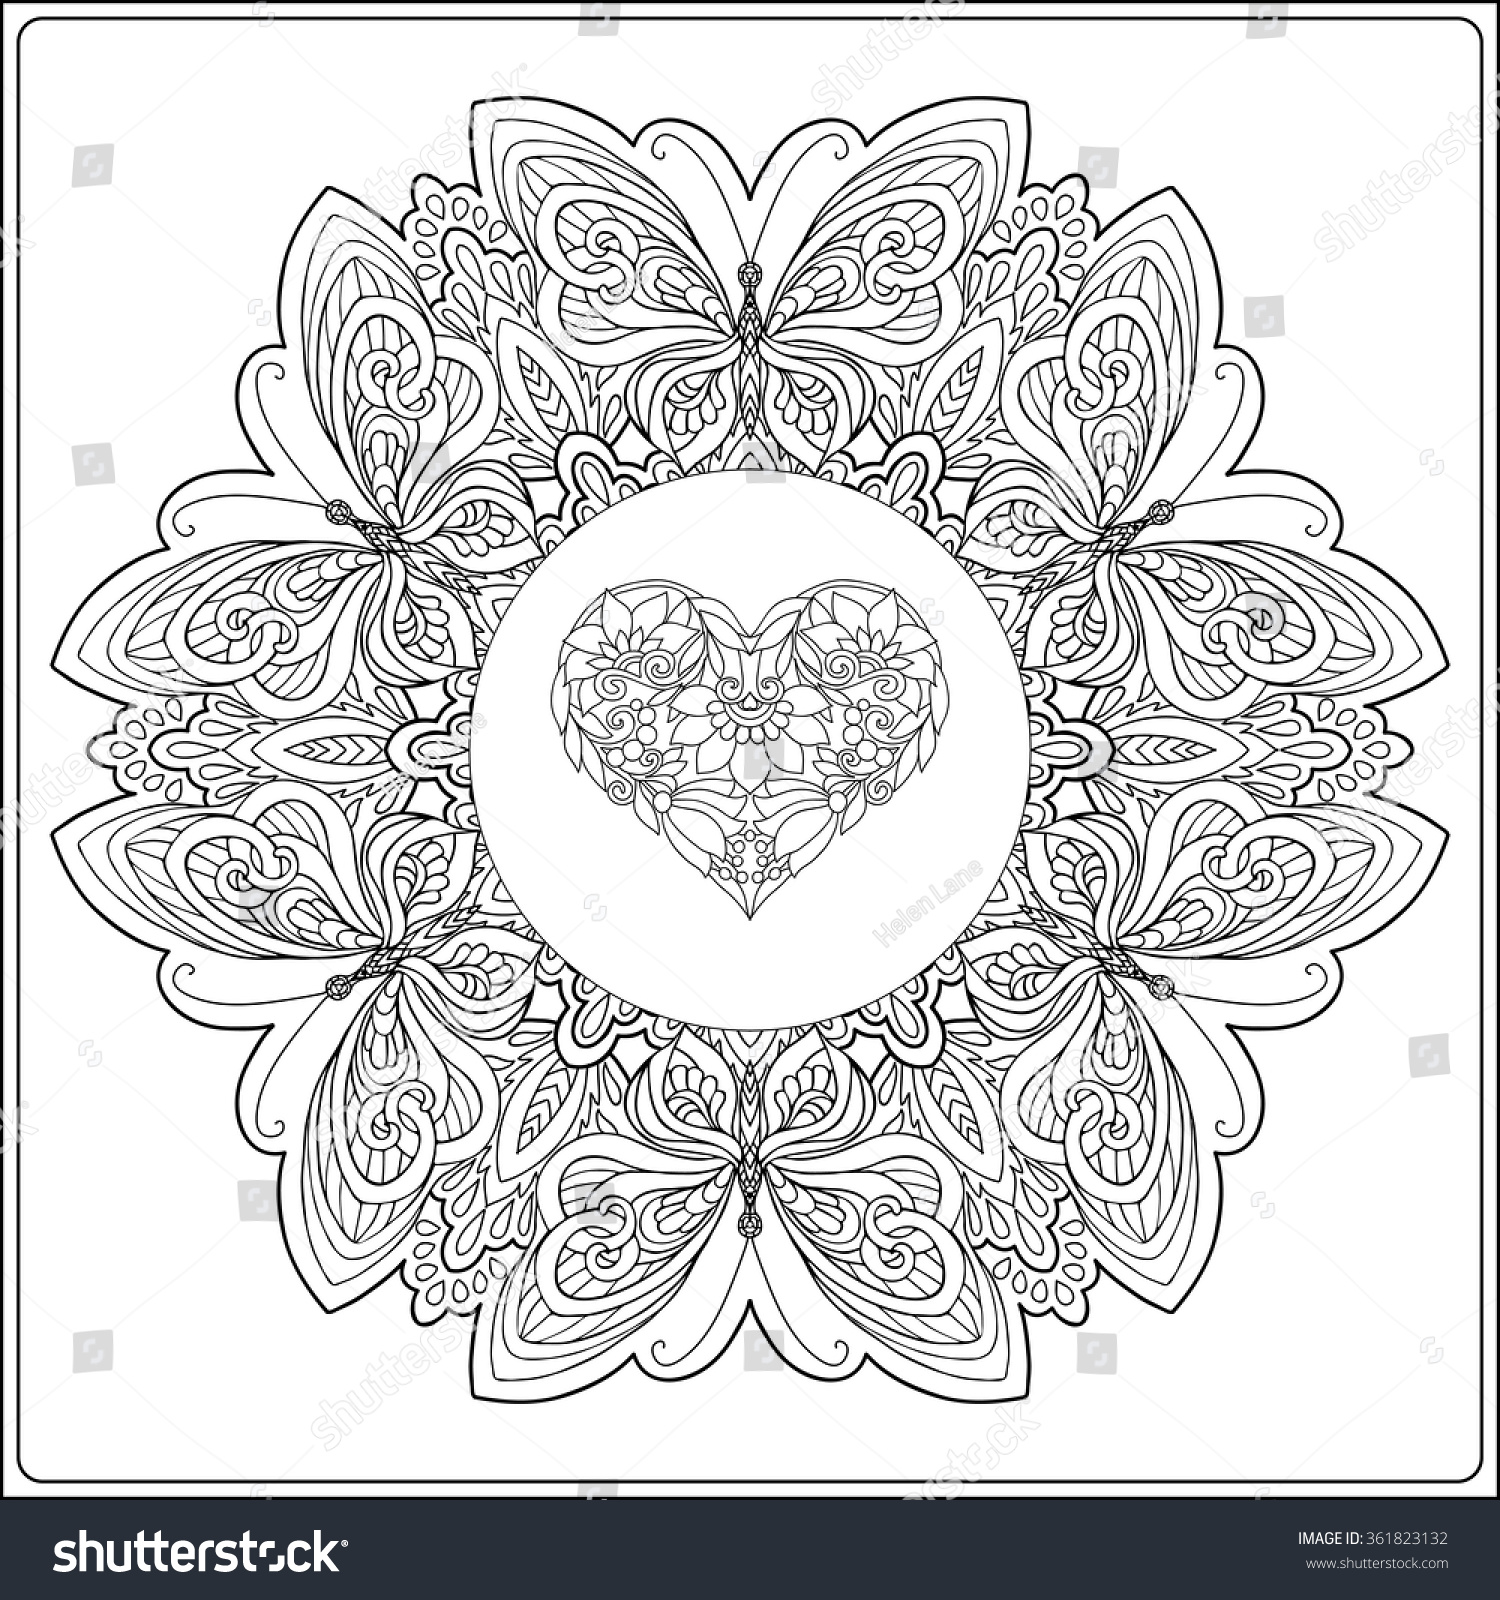 Valentines day mandala coloring pages - Hand Drawn Floral Mandala With Butterflies And Decorative Love Heart For Valentine S Day Vector Illustration